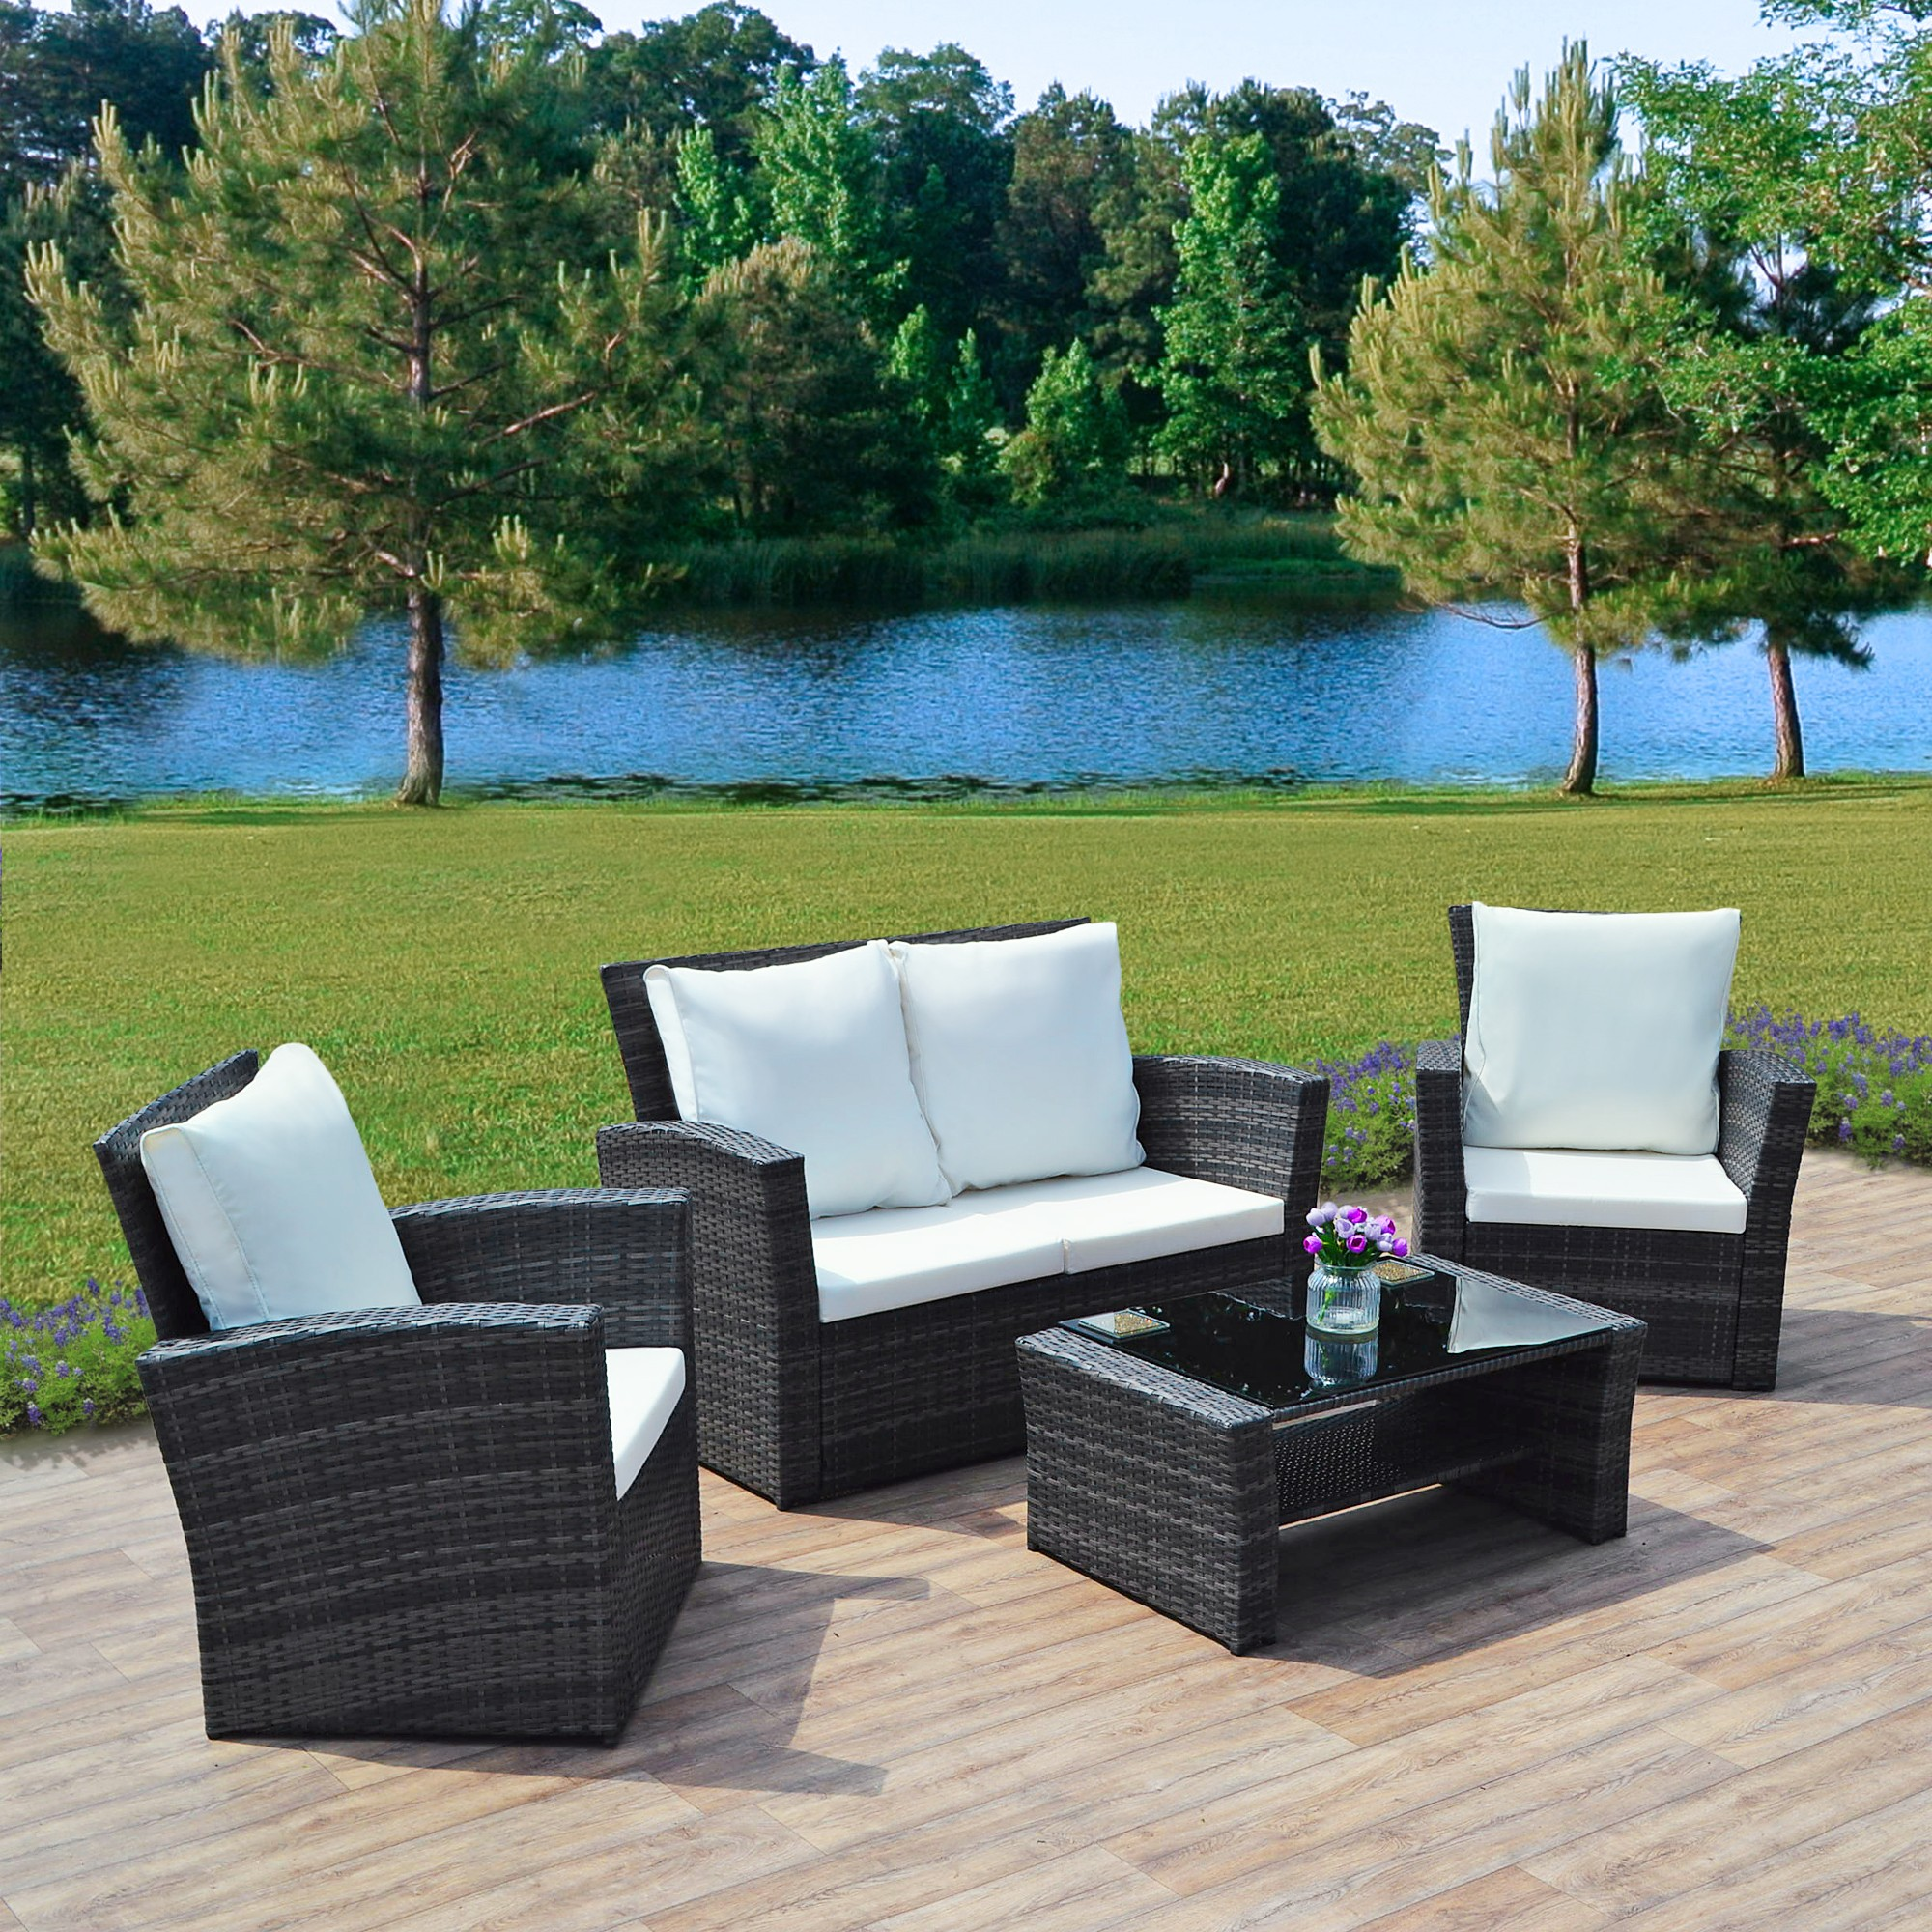 Rattan Sofa Sets Garden Furniture O Winter 57 Off Best Choice Products 7pc Outdoor Patio Thesofa